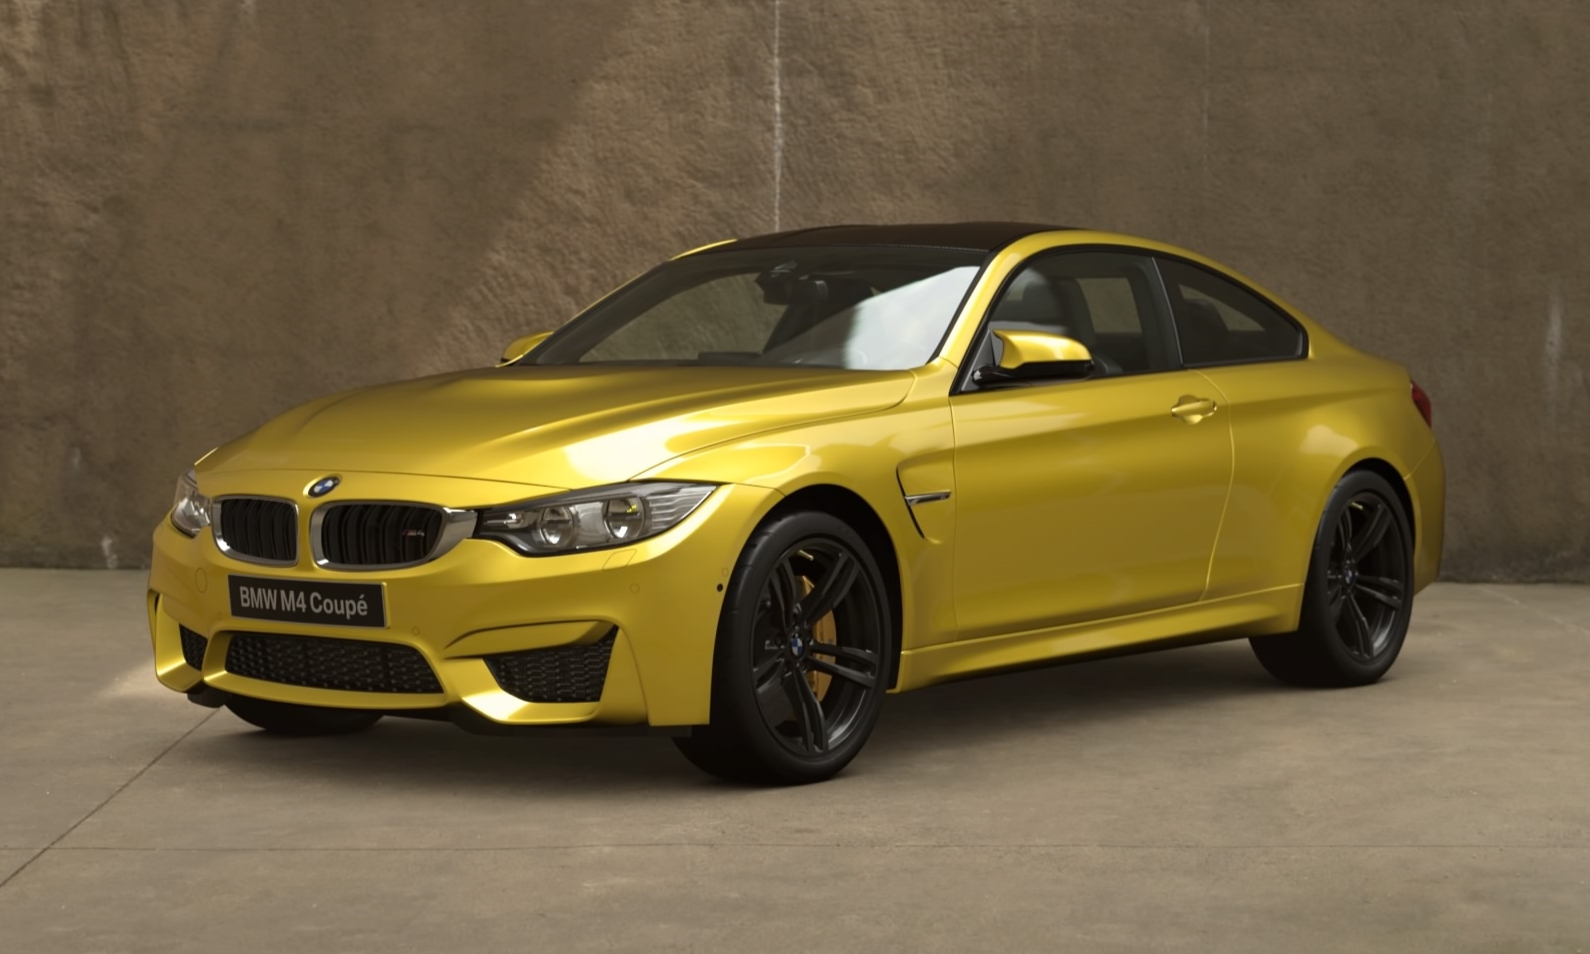 bmw m4 coup gran turismo wiki fandom powered by wikia. Black Bedroom Furniture Sets. Home Design Ideas